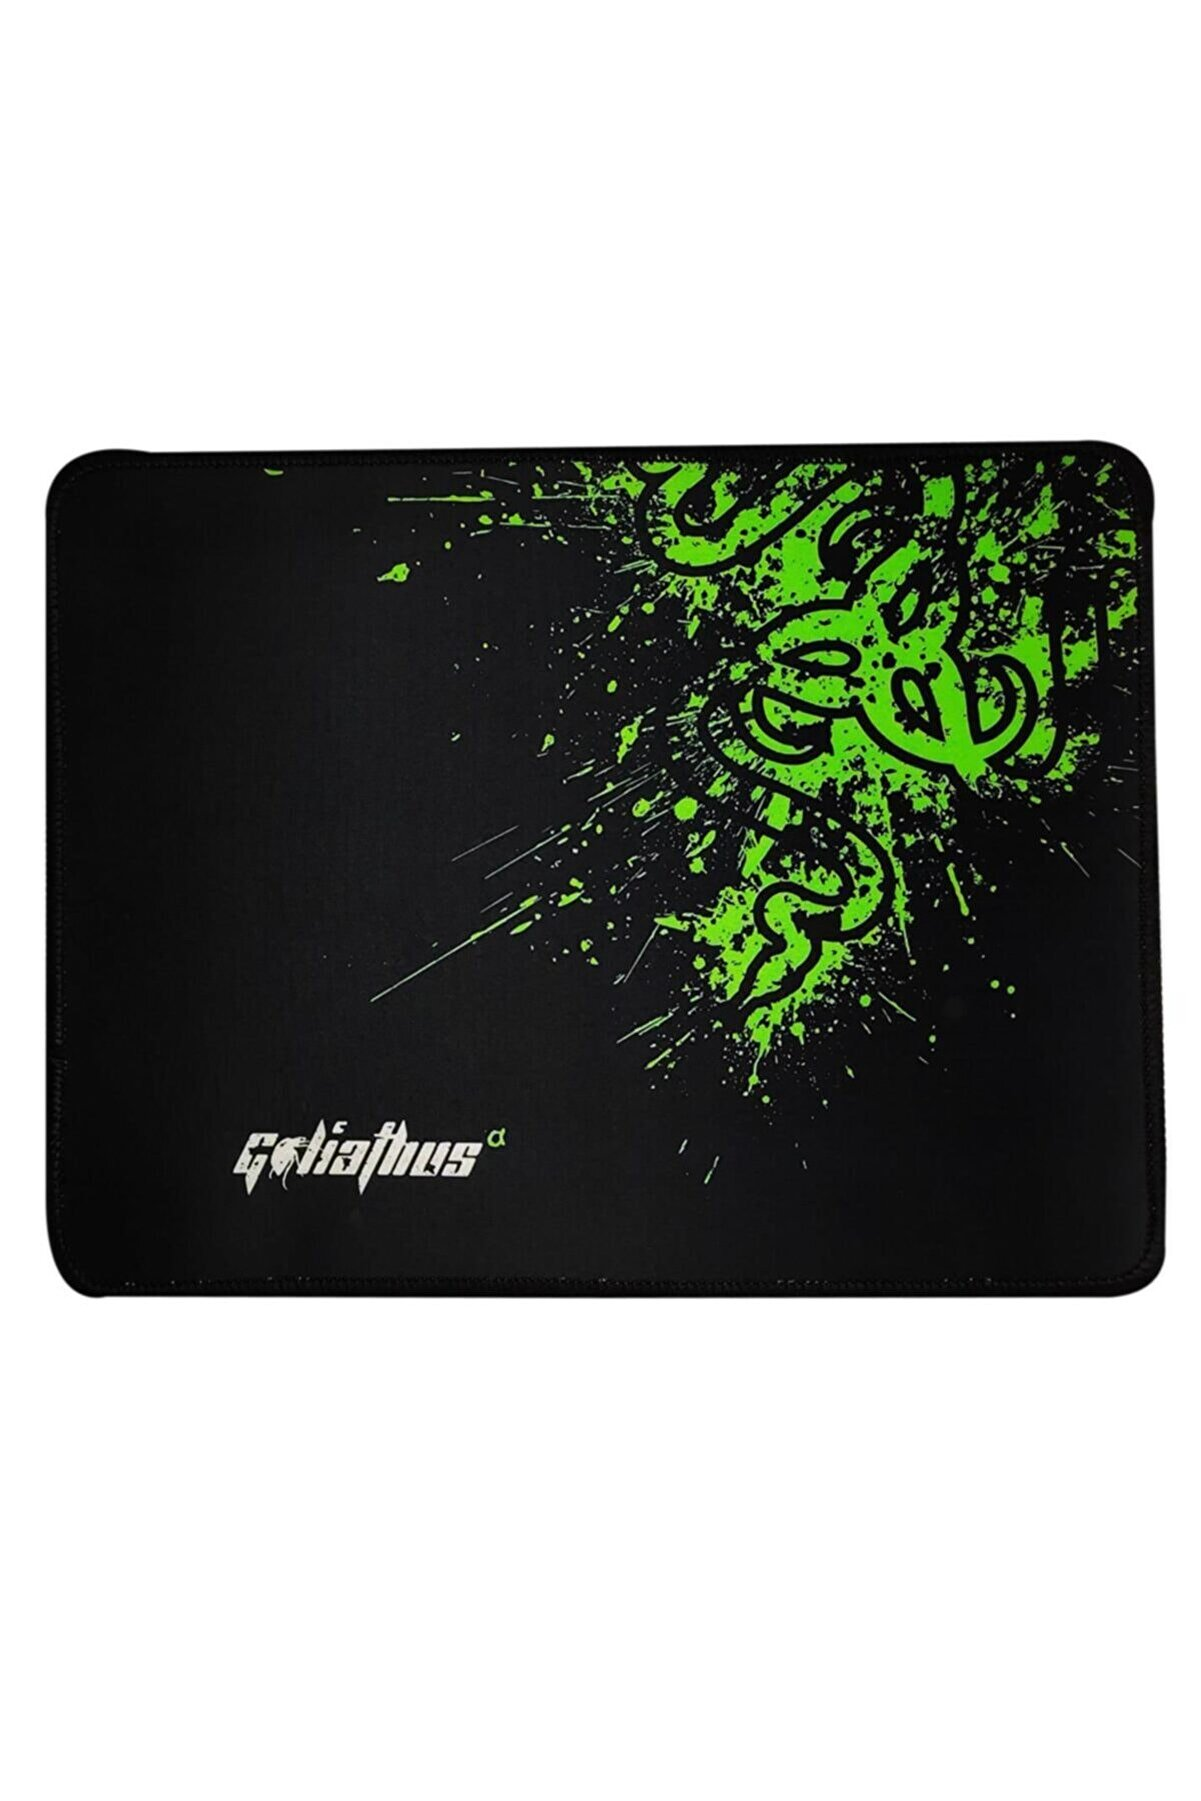 Rowen Roccat Gaming Mouse Pad 32x24 Cm